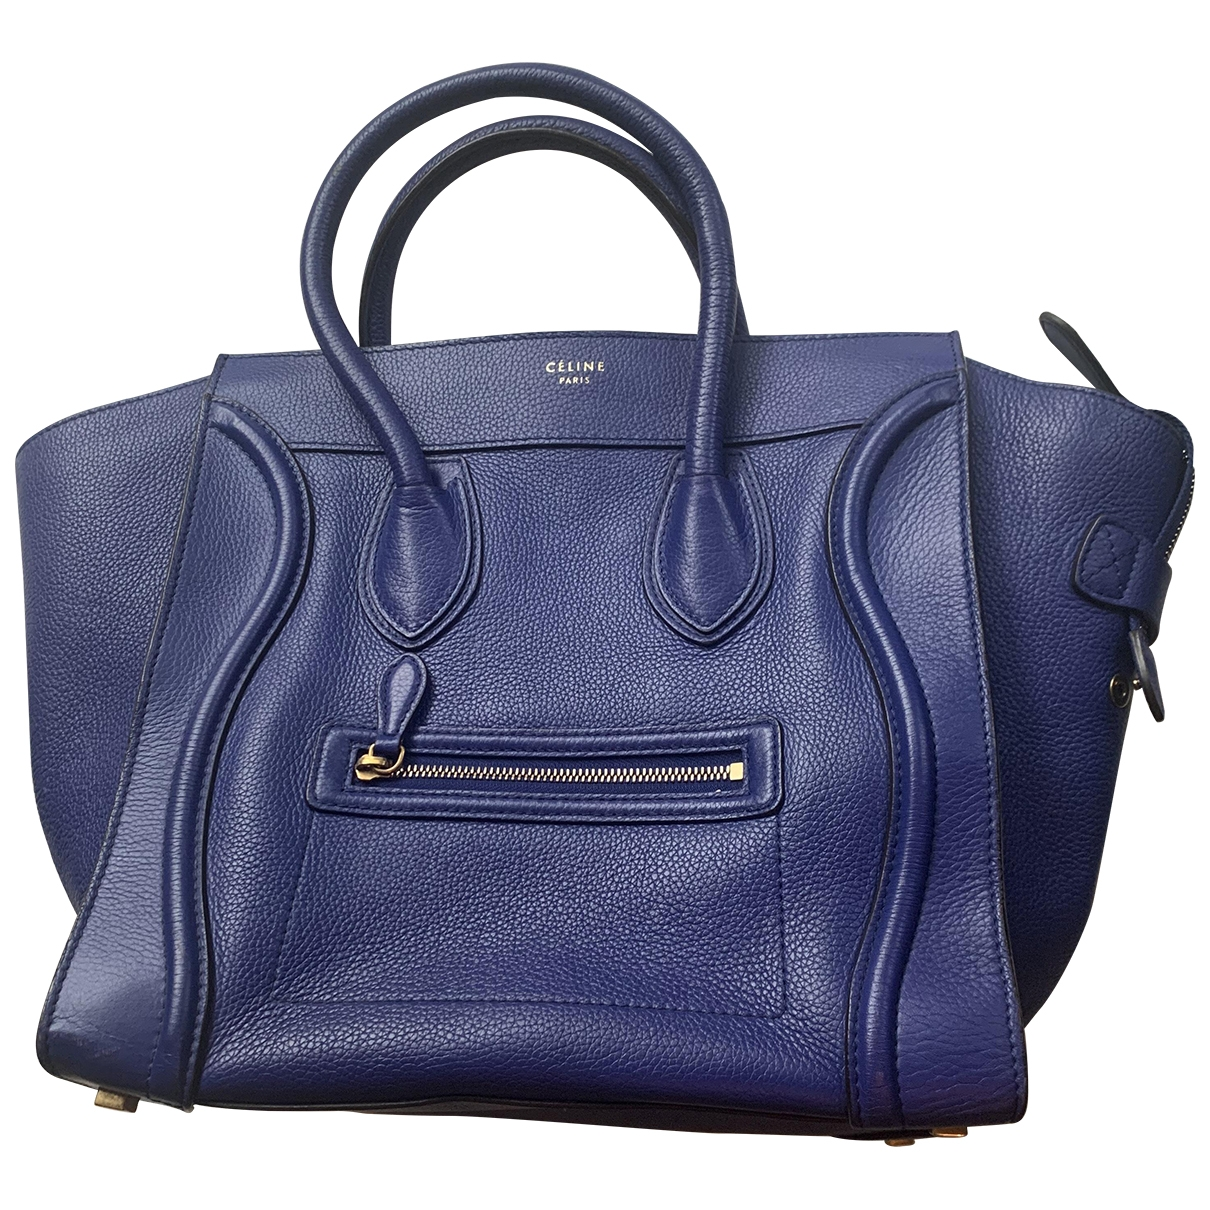 Celine Luggage Blue Leather handbag for Women \N